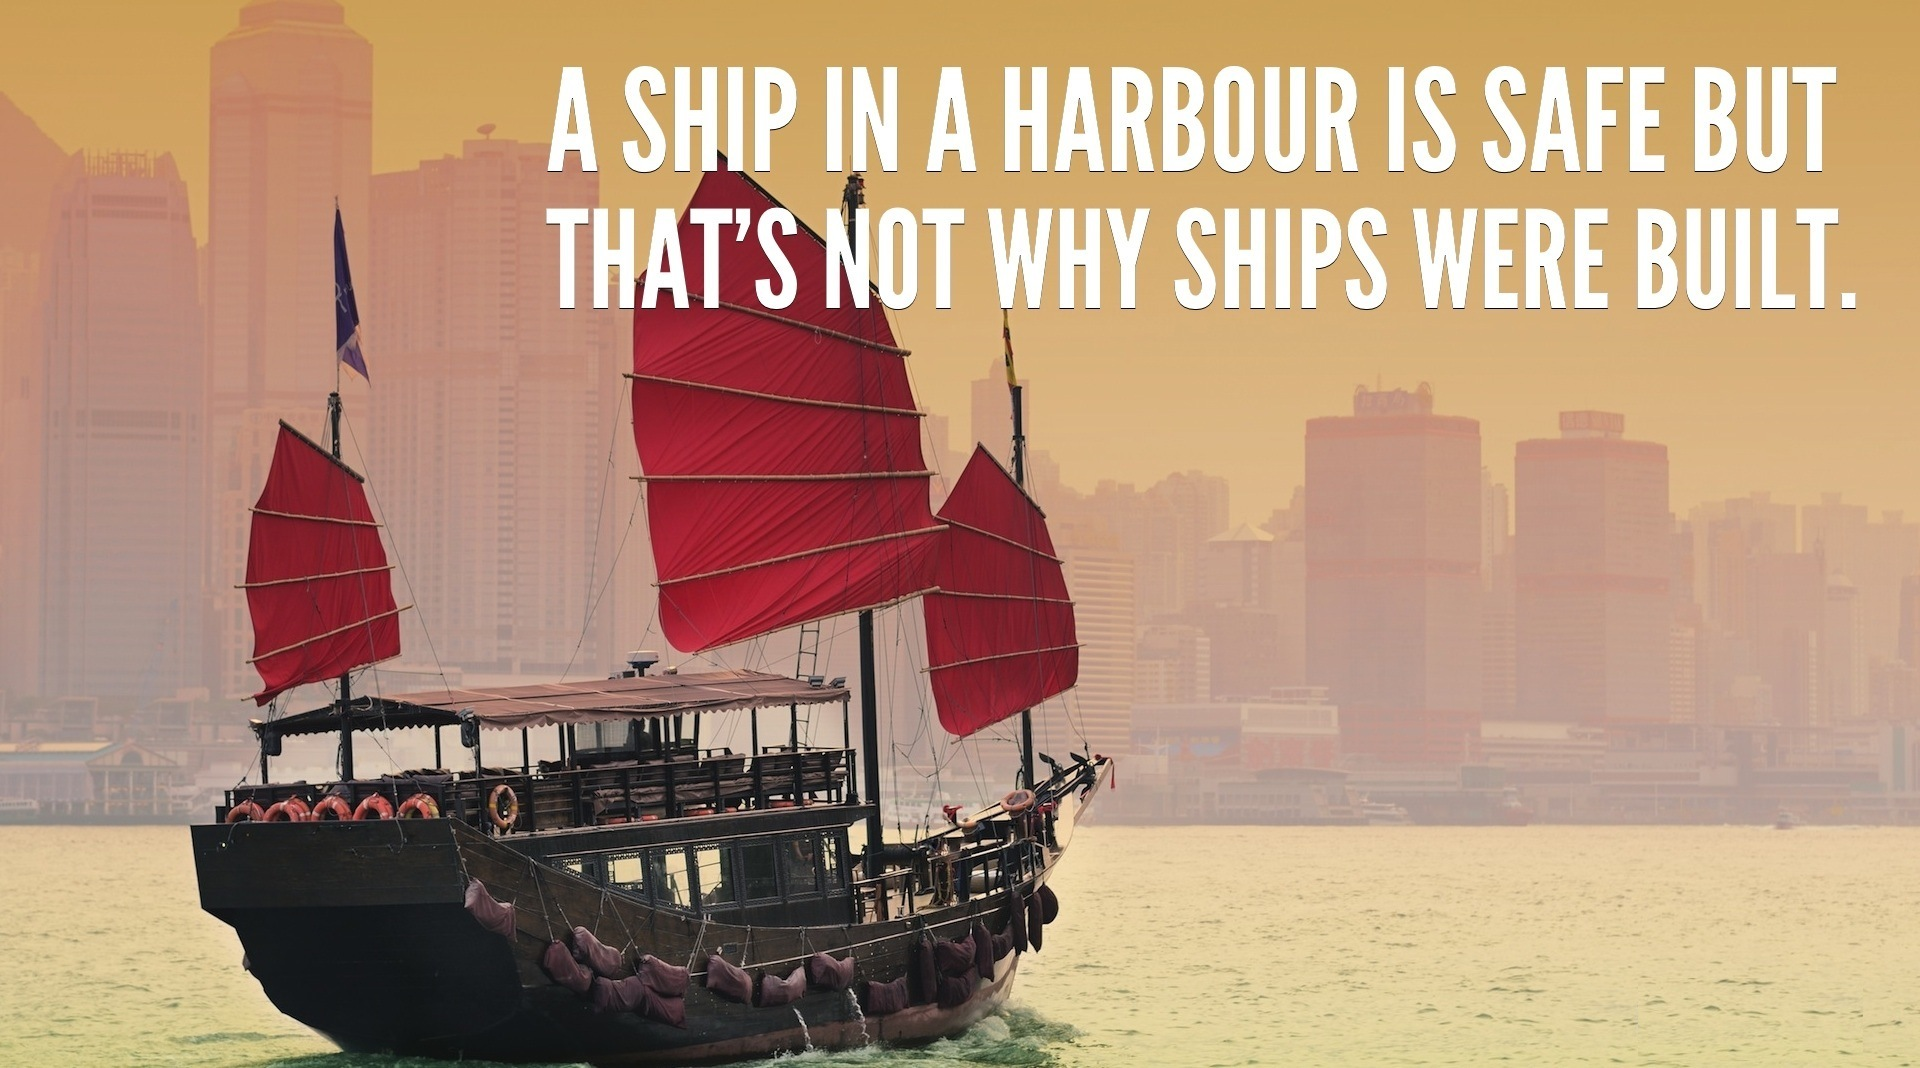 A-ship-in-a-harbour-is-safe-but-that-is-not-why-ships-were-built.